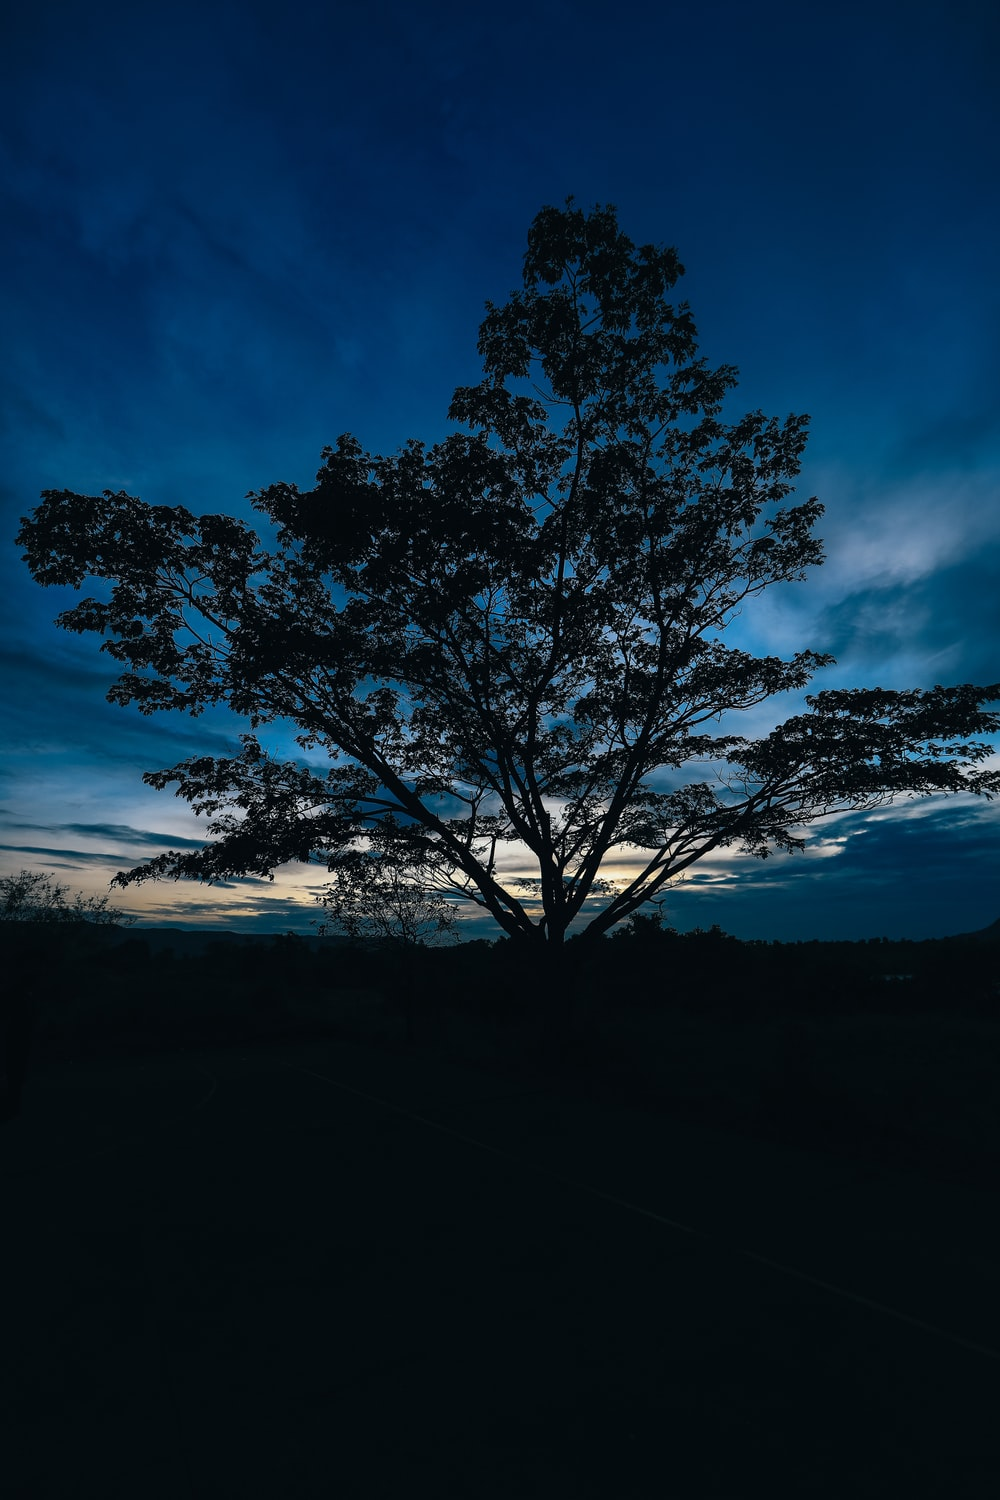 silhouette of tree under blue sky during night time